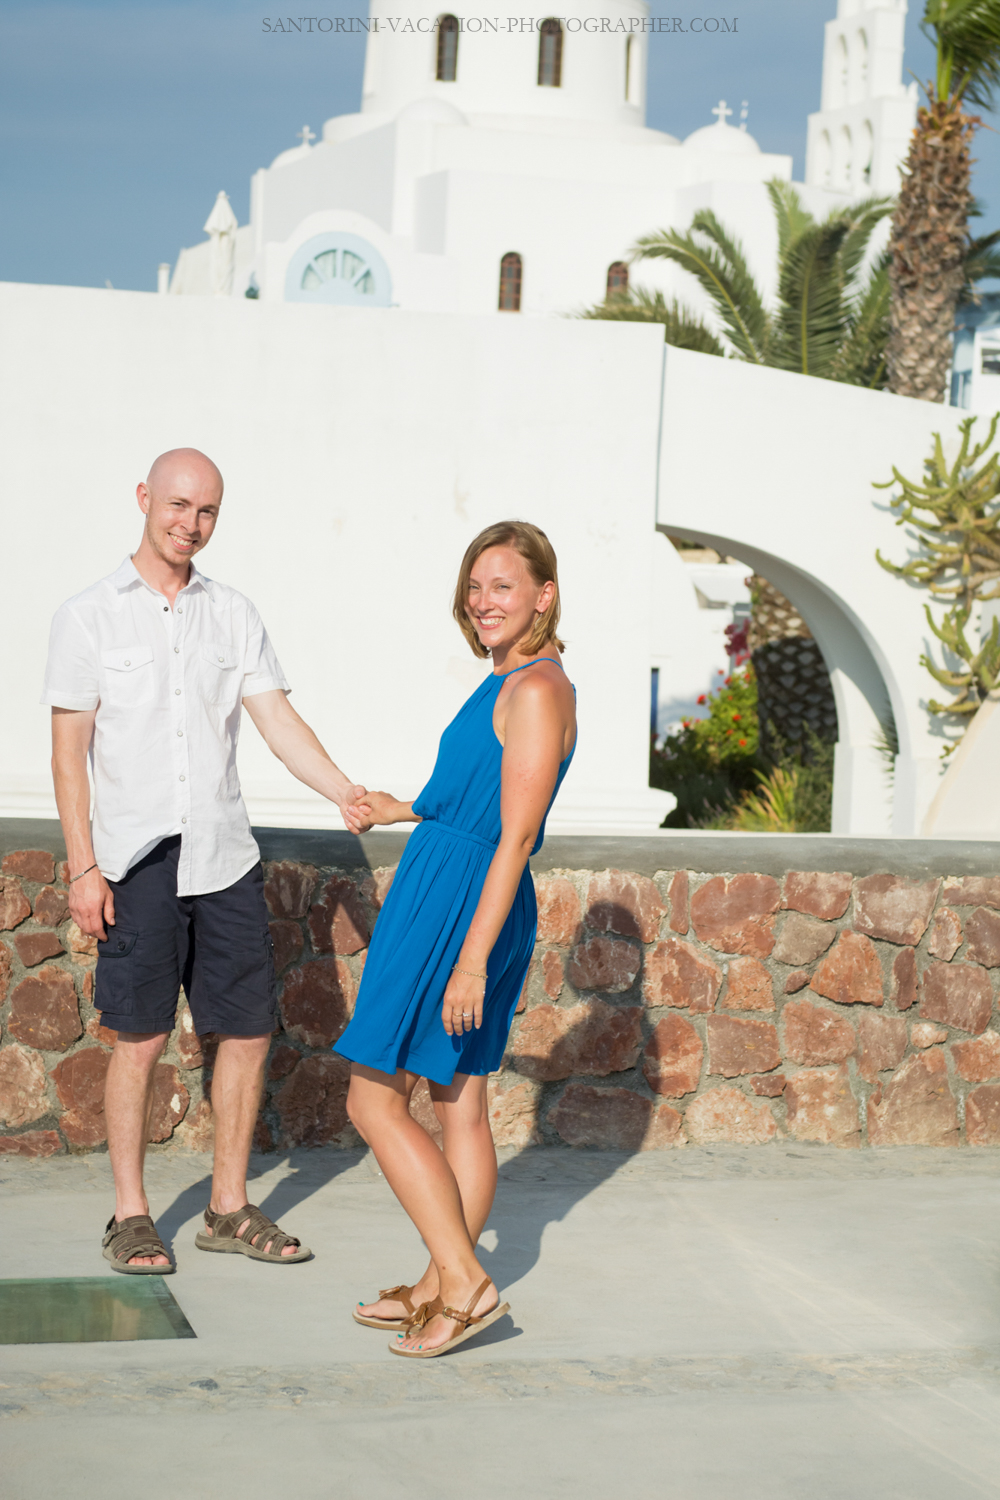 Destination-honeymoon-photo-session-Santorini-007